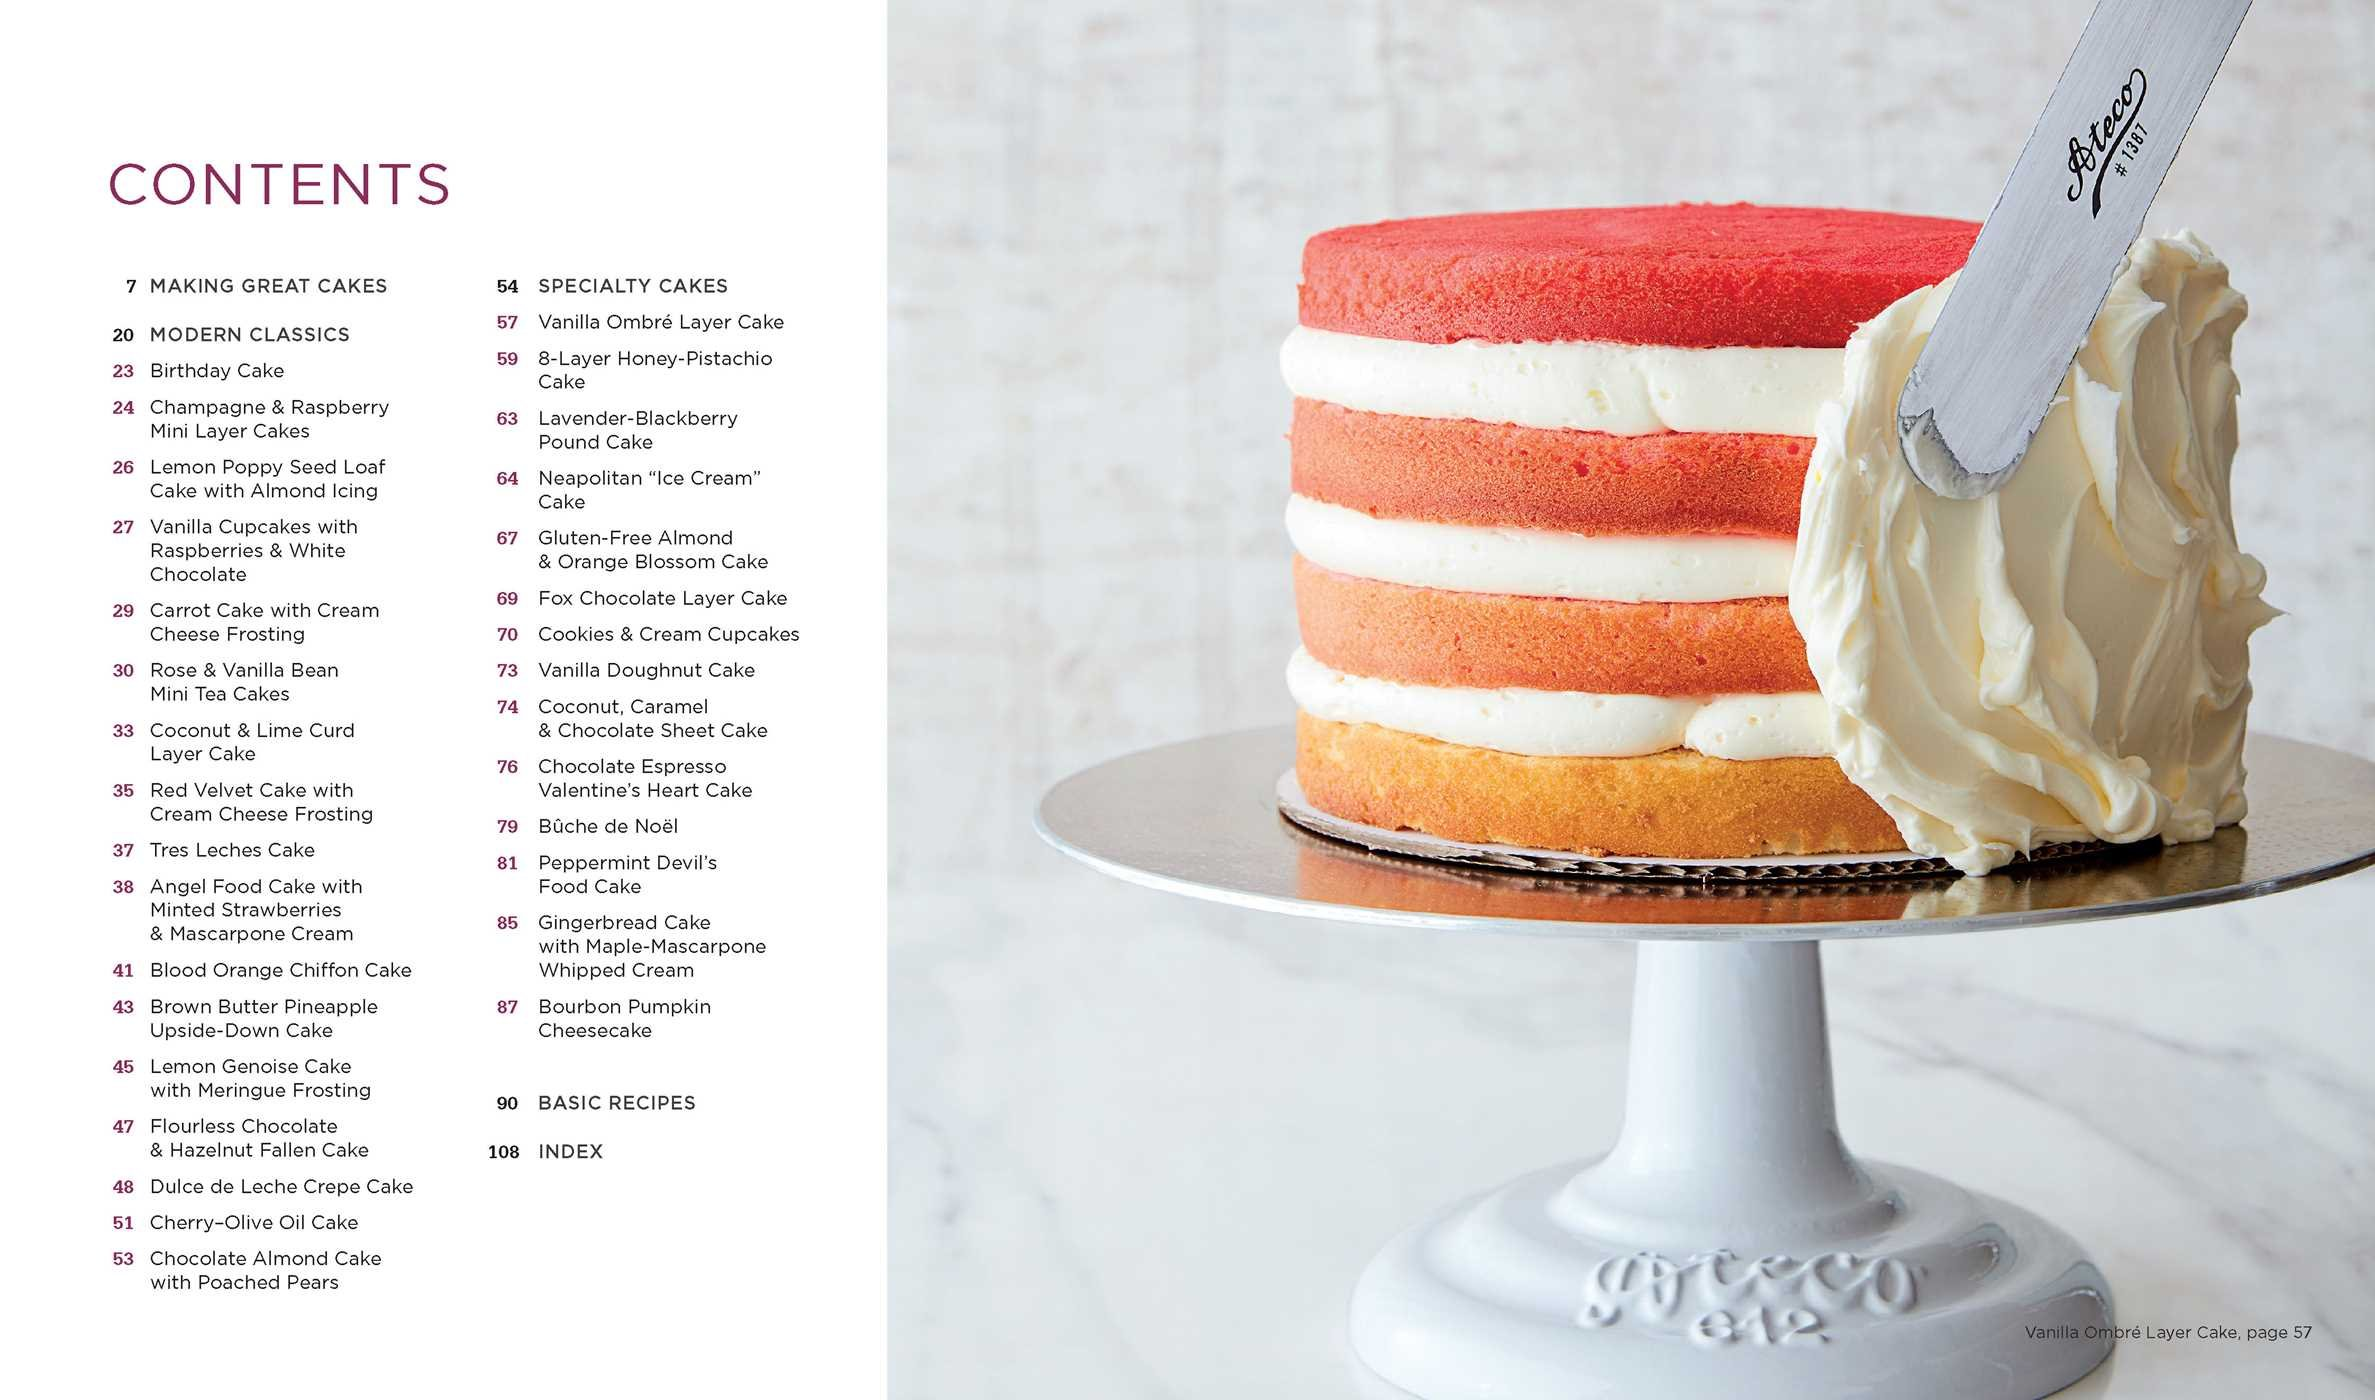 Favorite Cakes: Showstopping Recipes for Every Occasion: Amazon.es: Williams Sonoma Test Kitchen: Libros en idiomas extranjeros